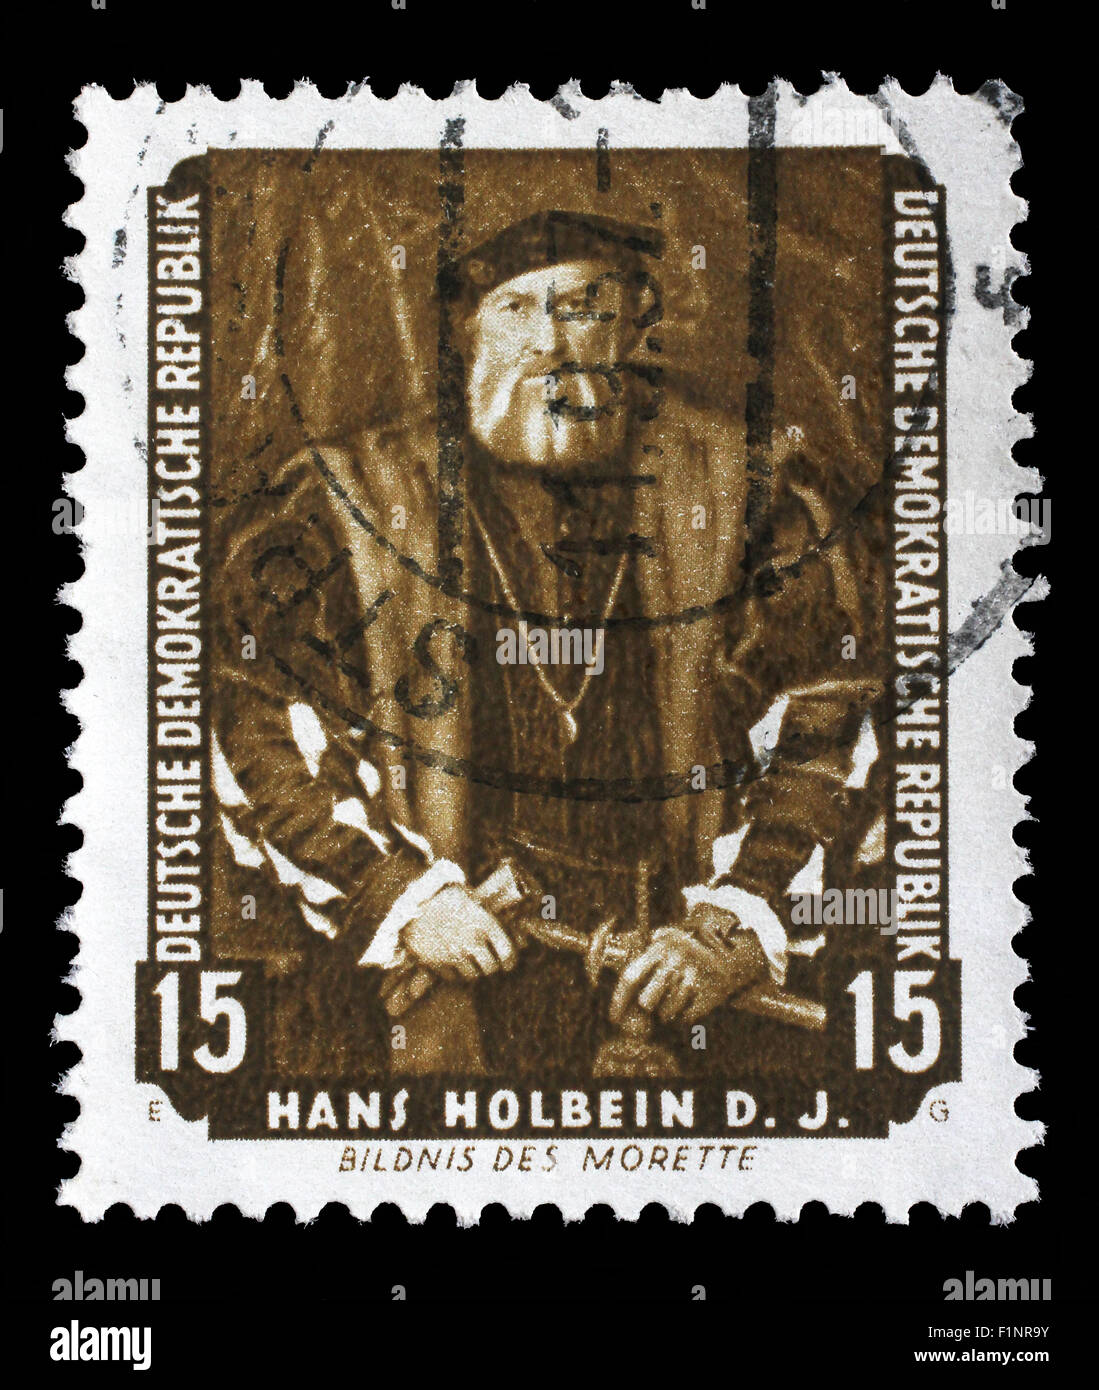 Stamp printed in DDR shows the painting Portrait of Morette, by Hans Holbein, circa 1957. - Stock Image